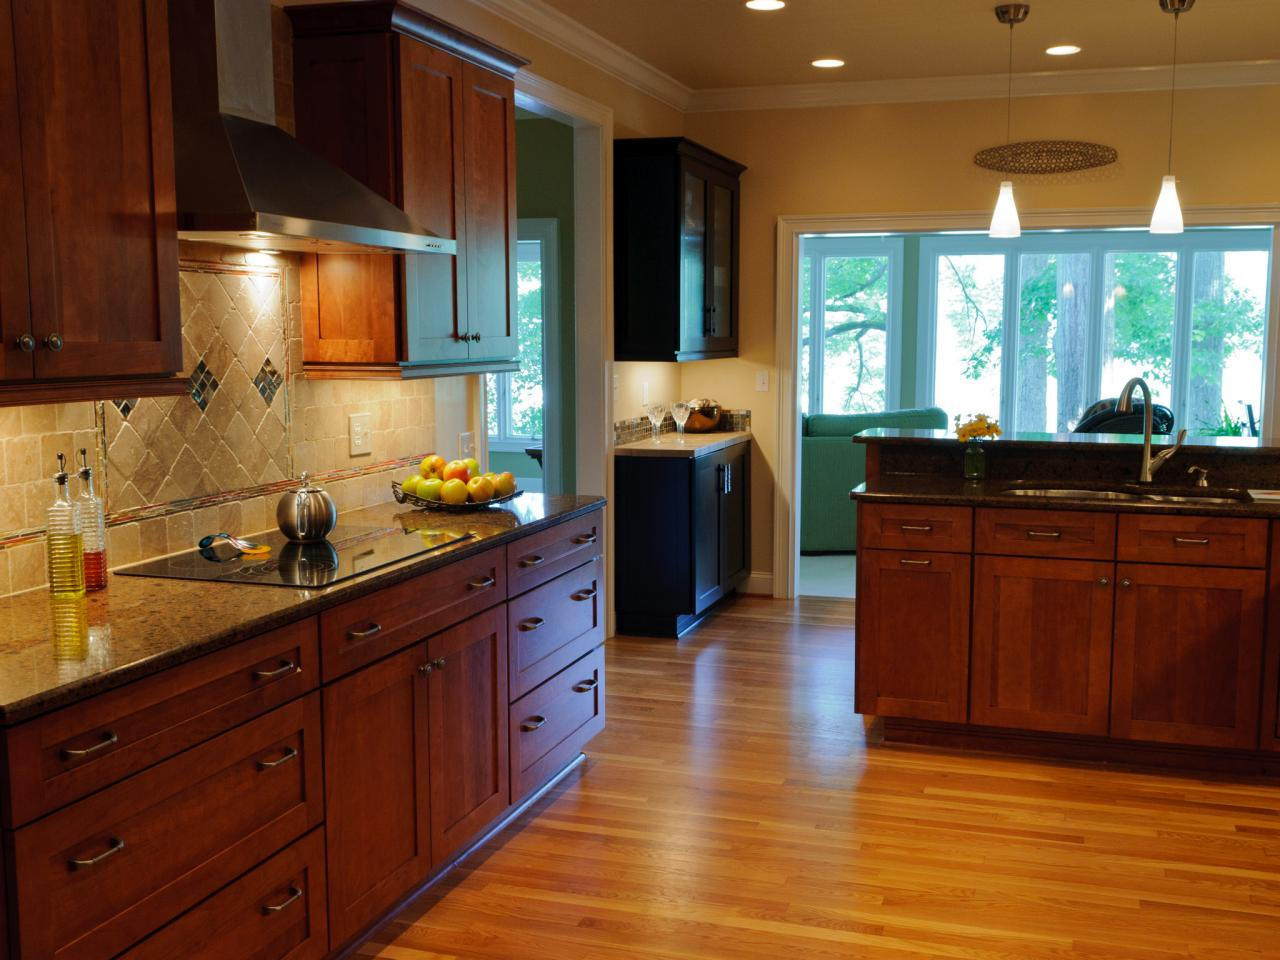 Elegant Refinished Kitchen Cabinets with Granite Countertop and Patterned Tile Backsplash